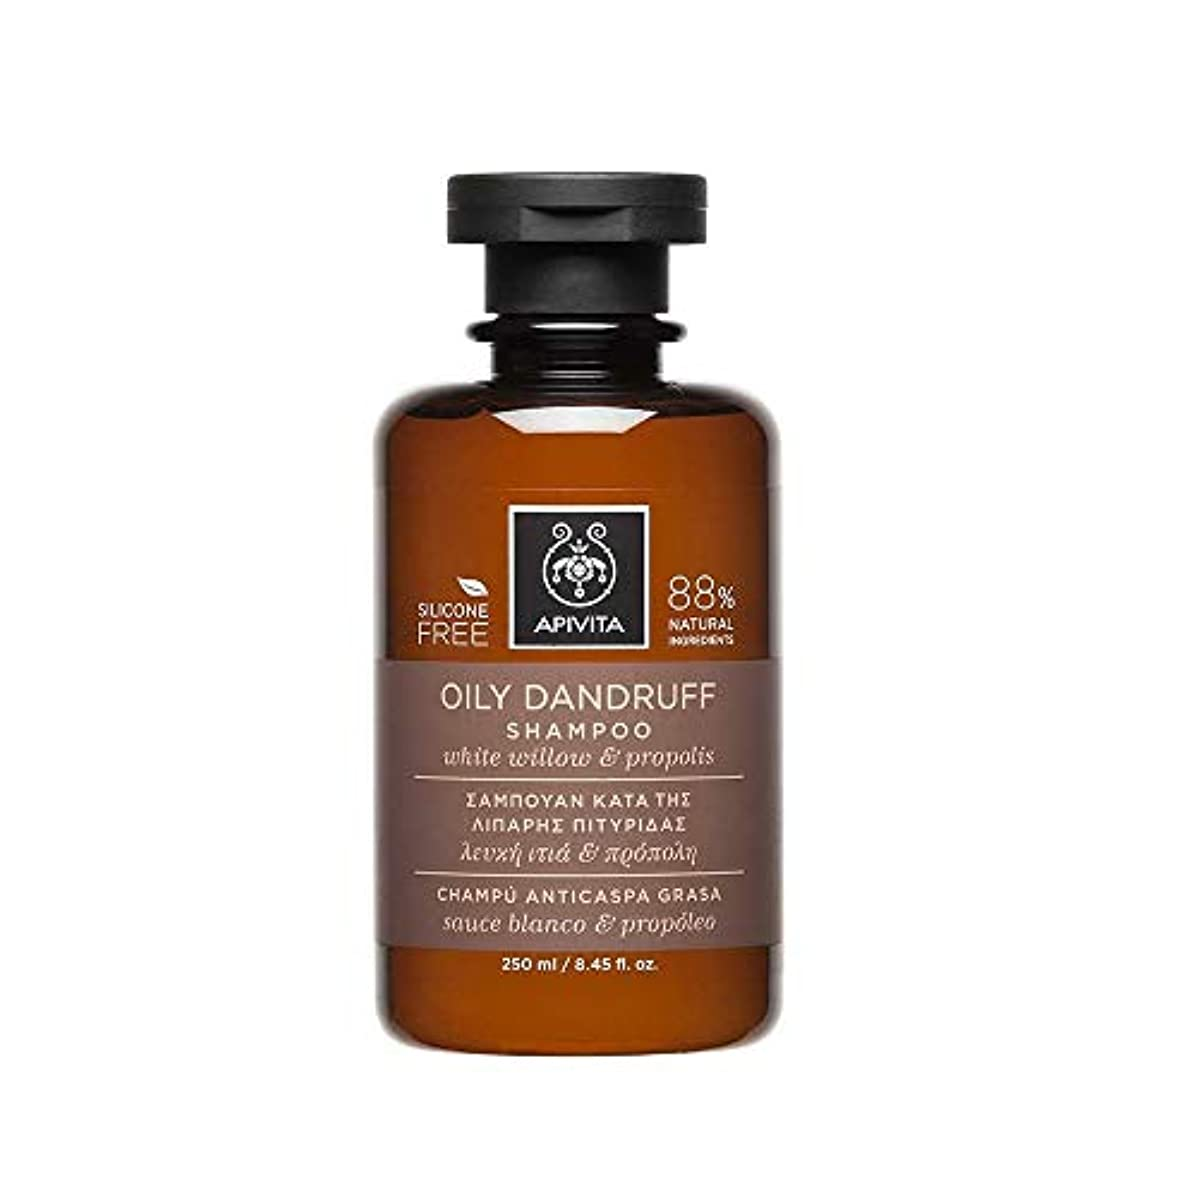 ルートかかわらず下線アピヴィータ Oily Dandruff Shampoo with White Willow & Propolis (For Oily Scalp) 250ml [並行輸入品]